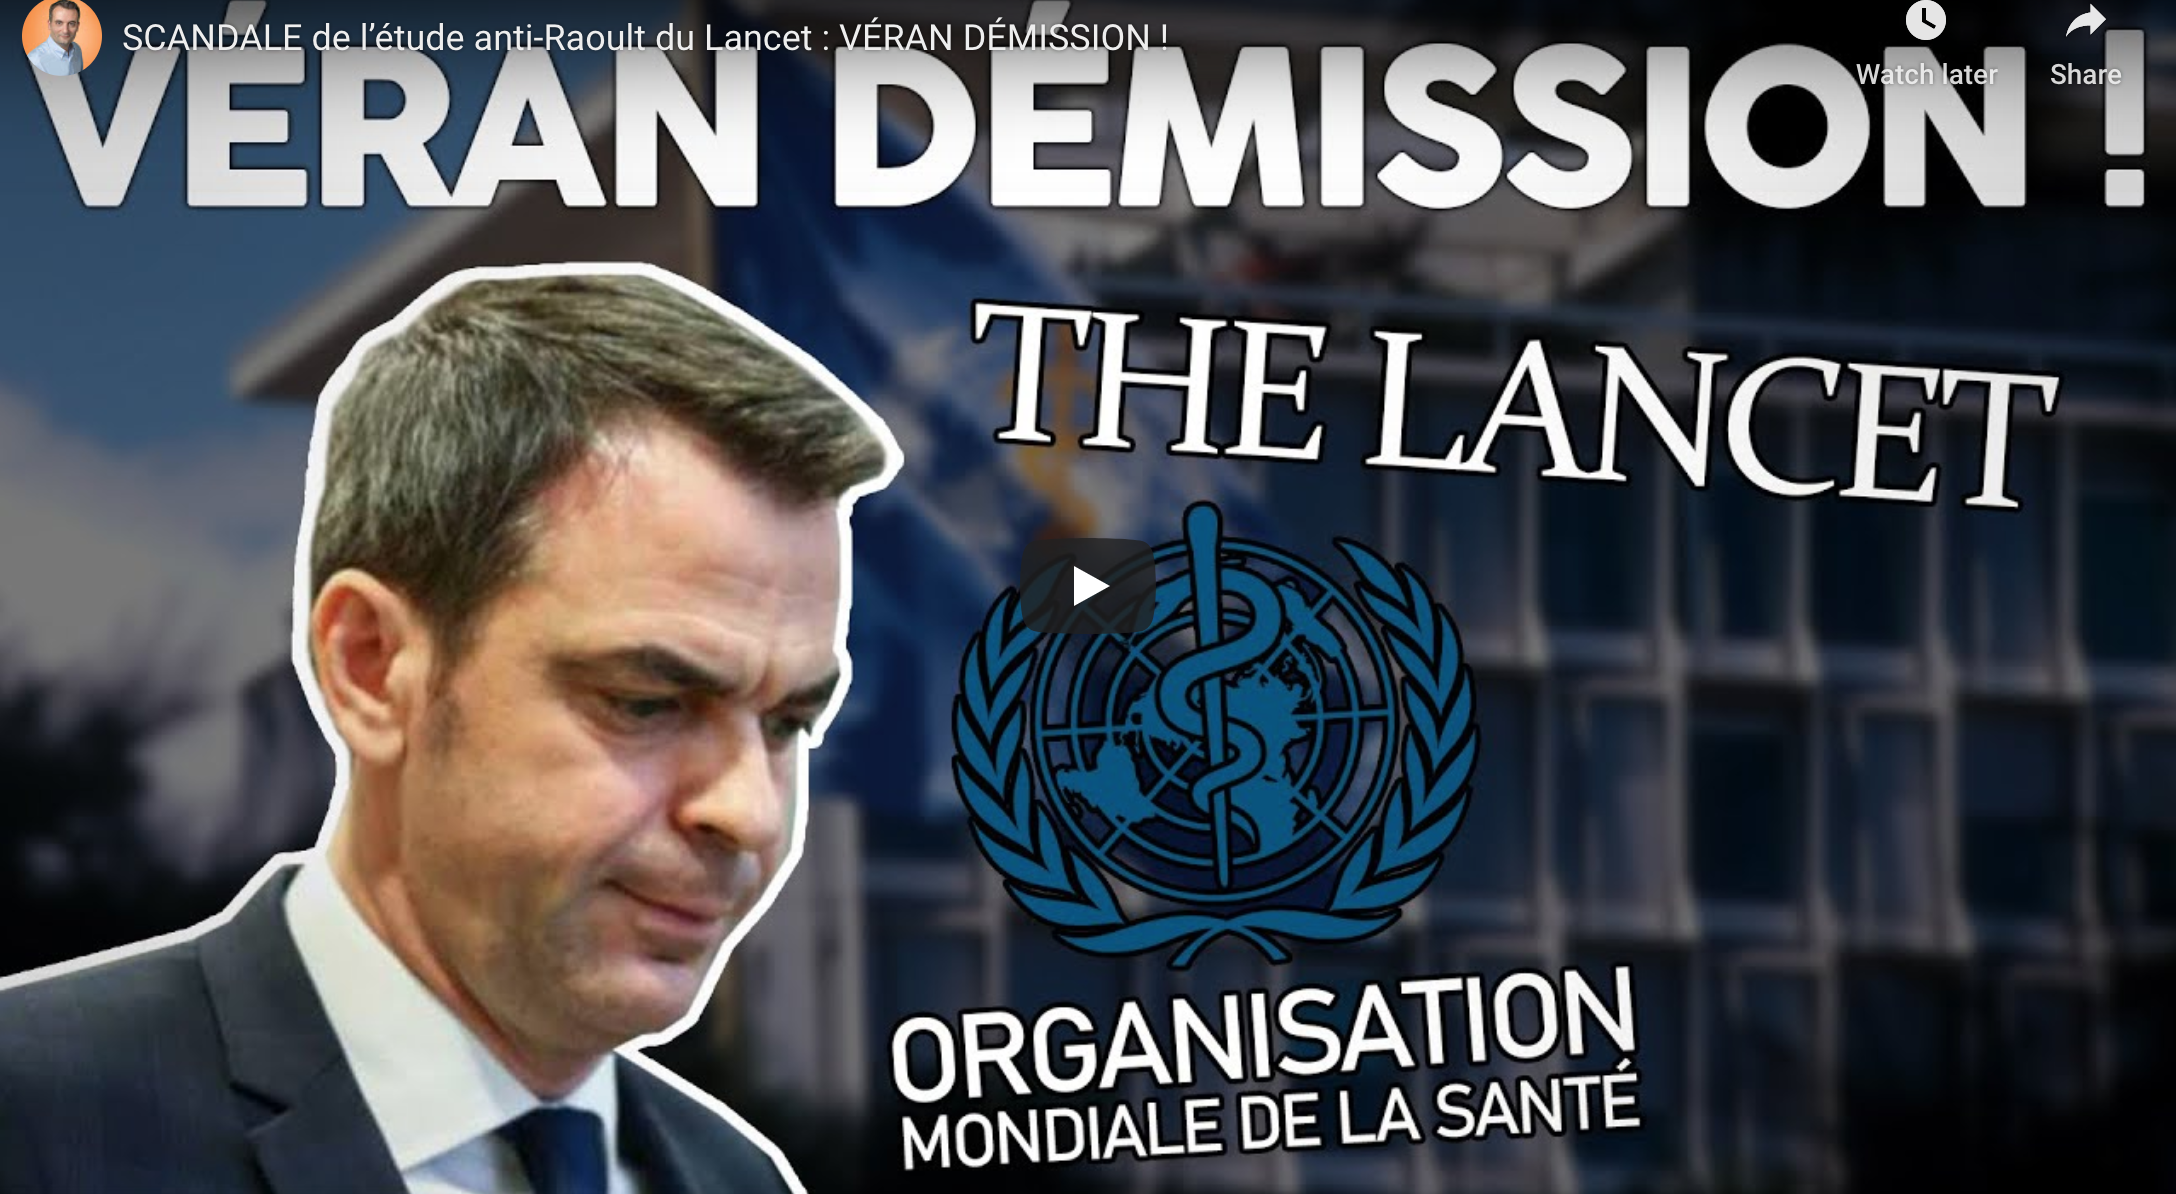 France: Call for Resignation of Health Minister and Funding Withdrawal from WHO